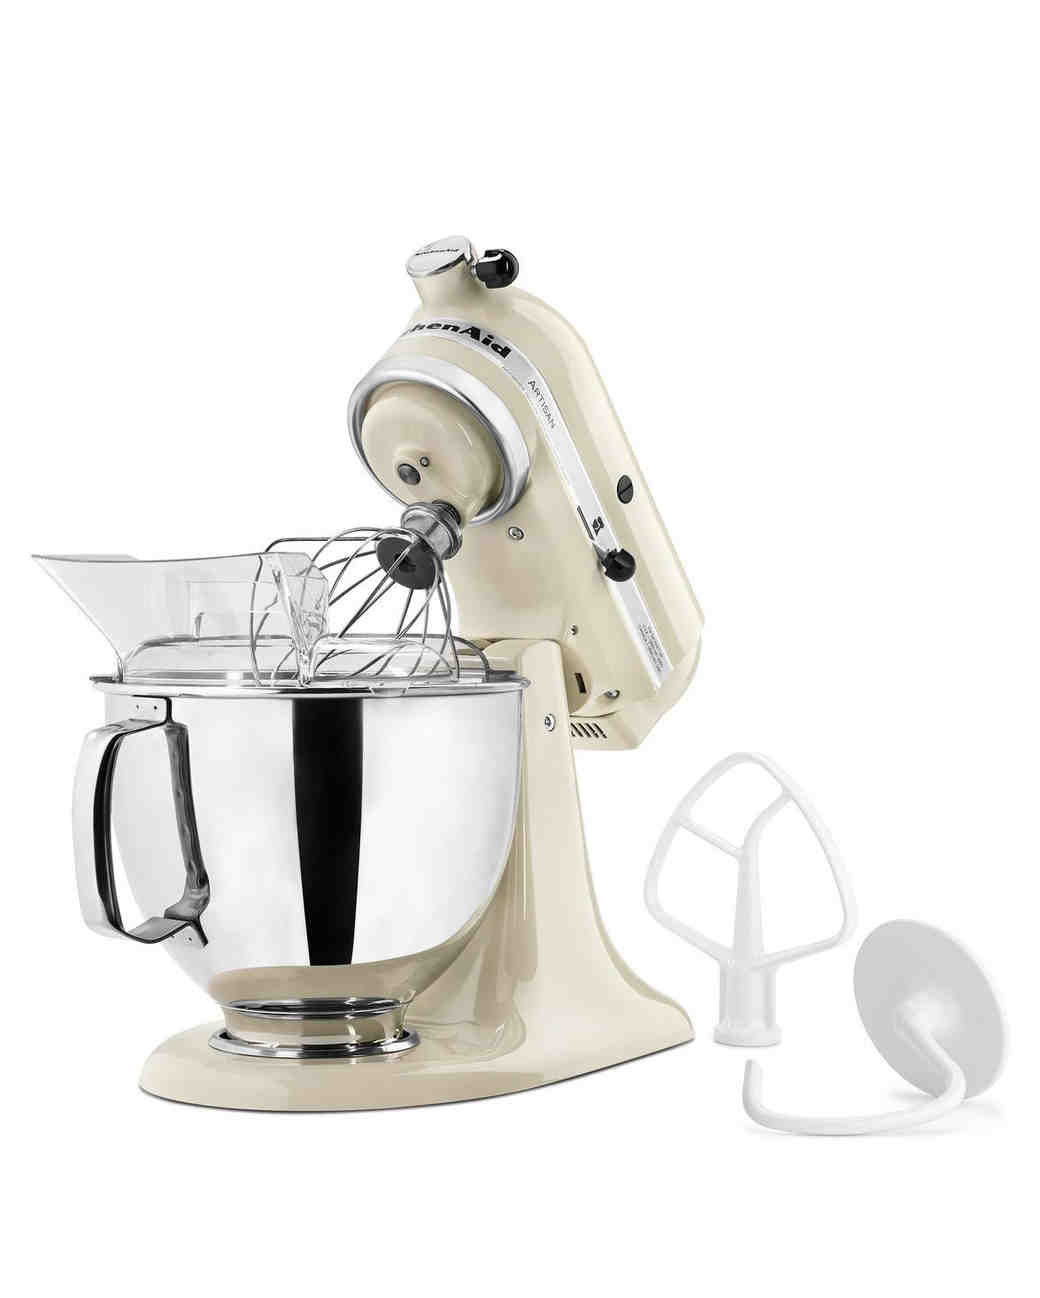 registry-eds-picks-cream-kitchenaid-0715.jpg